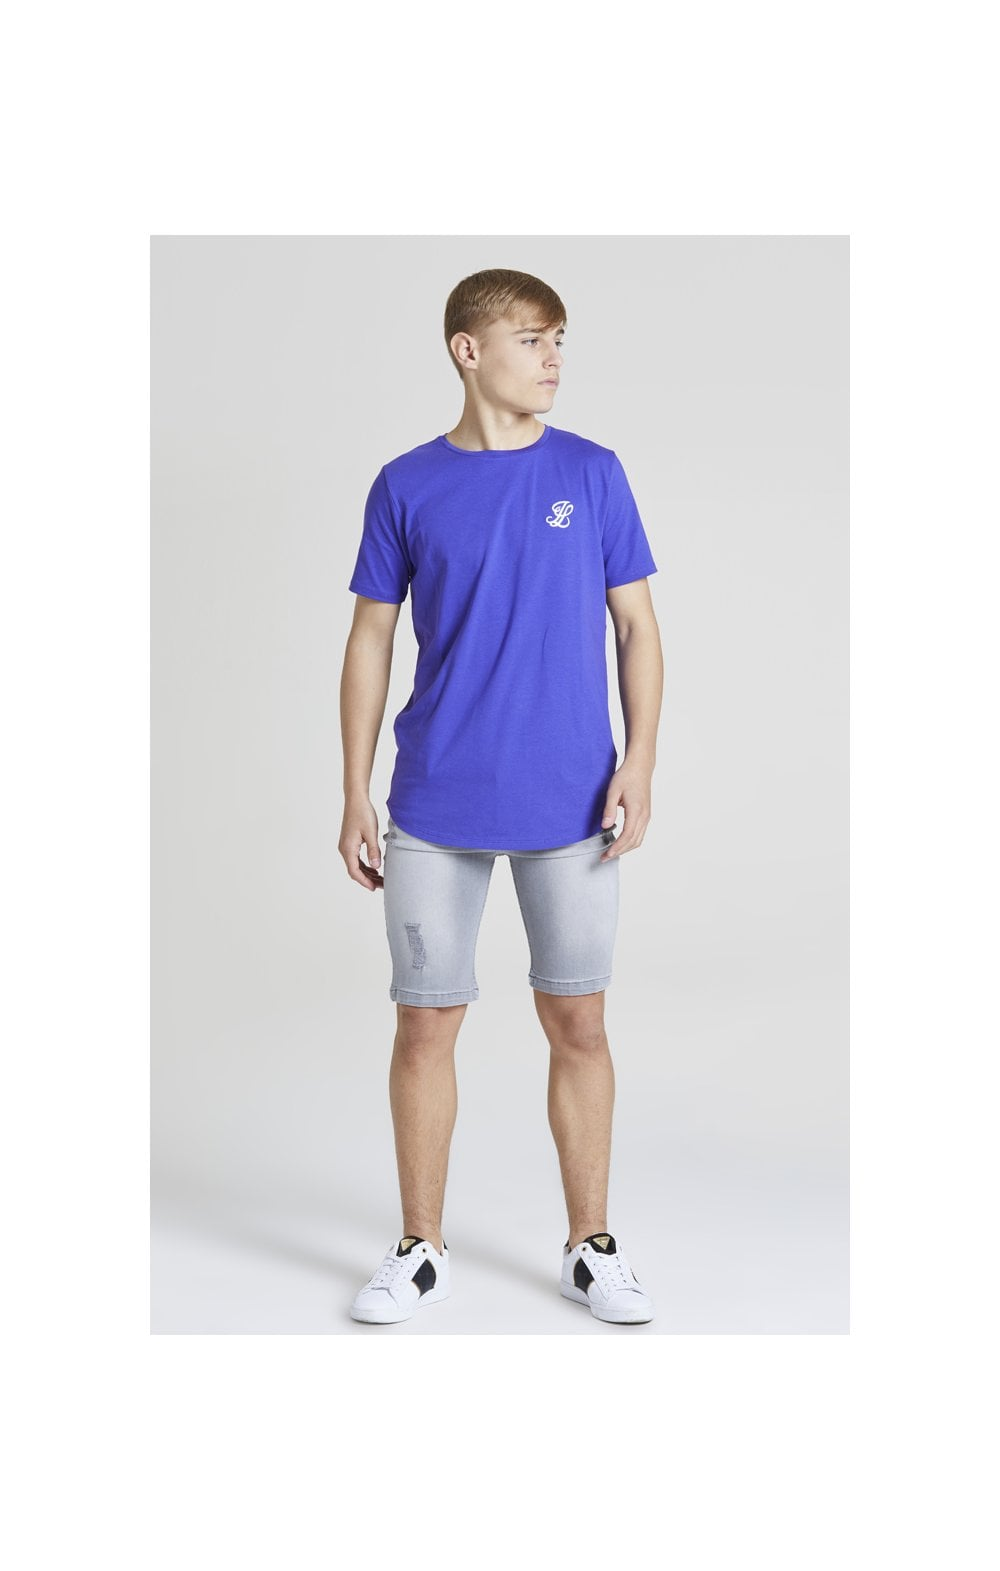 Load image into Gallery viewer, Illusive London Core Tee - Purple (1)